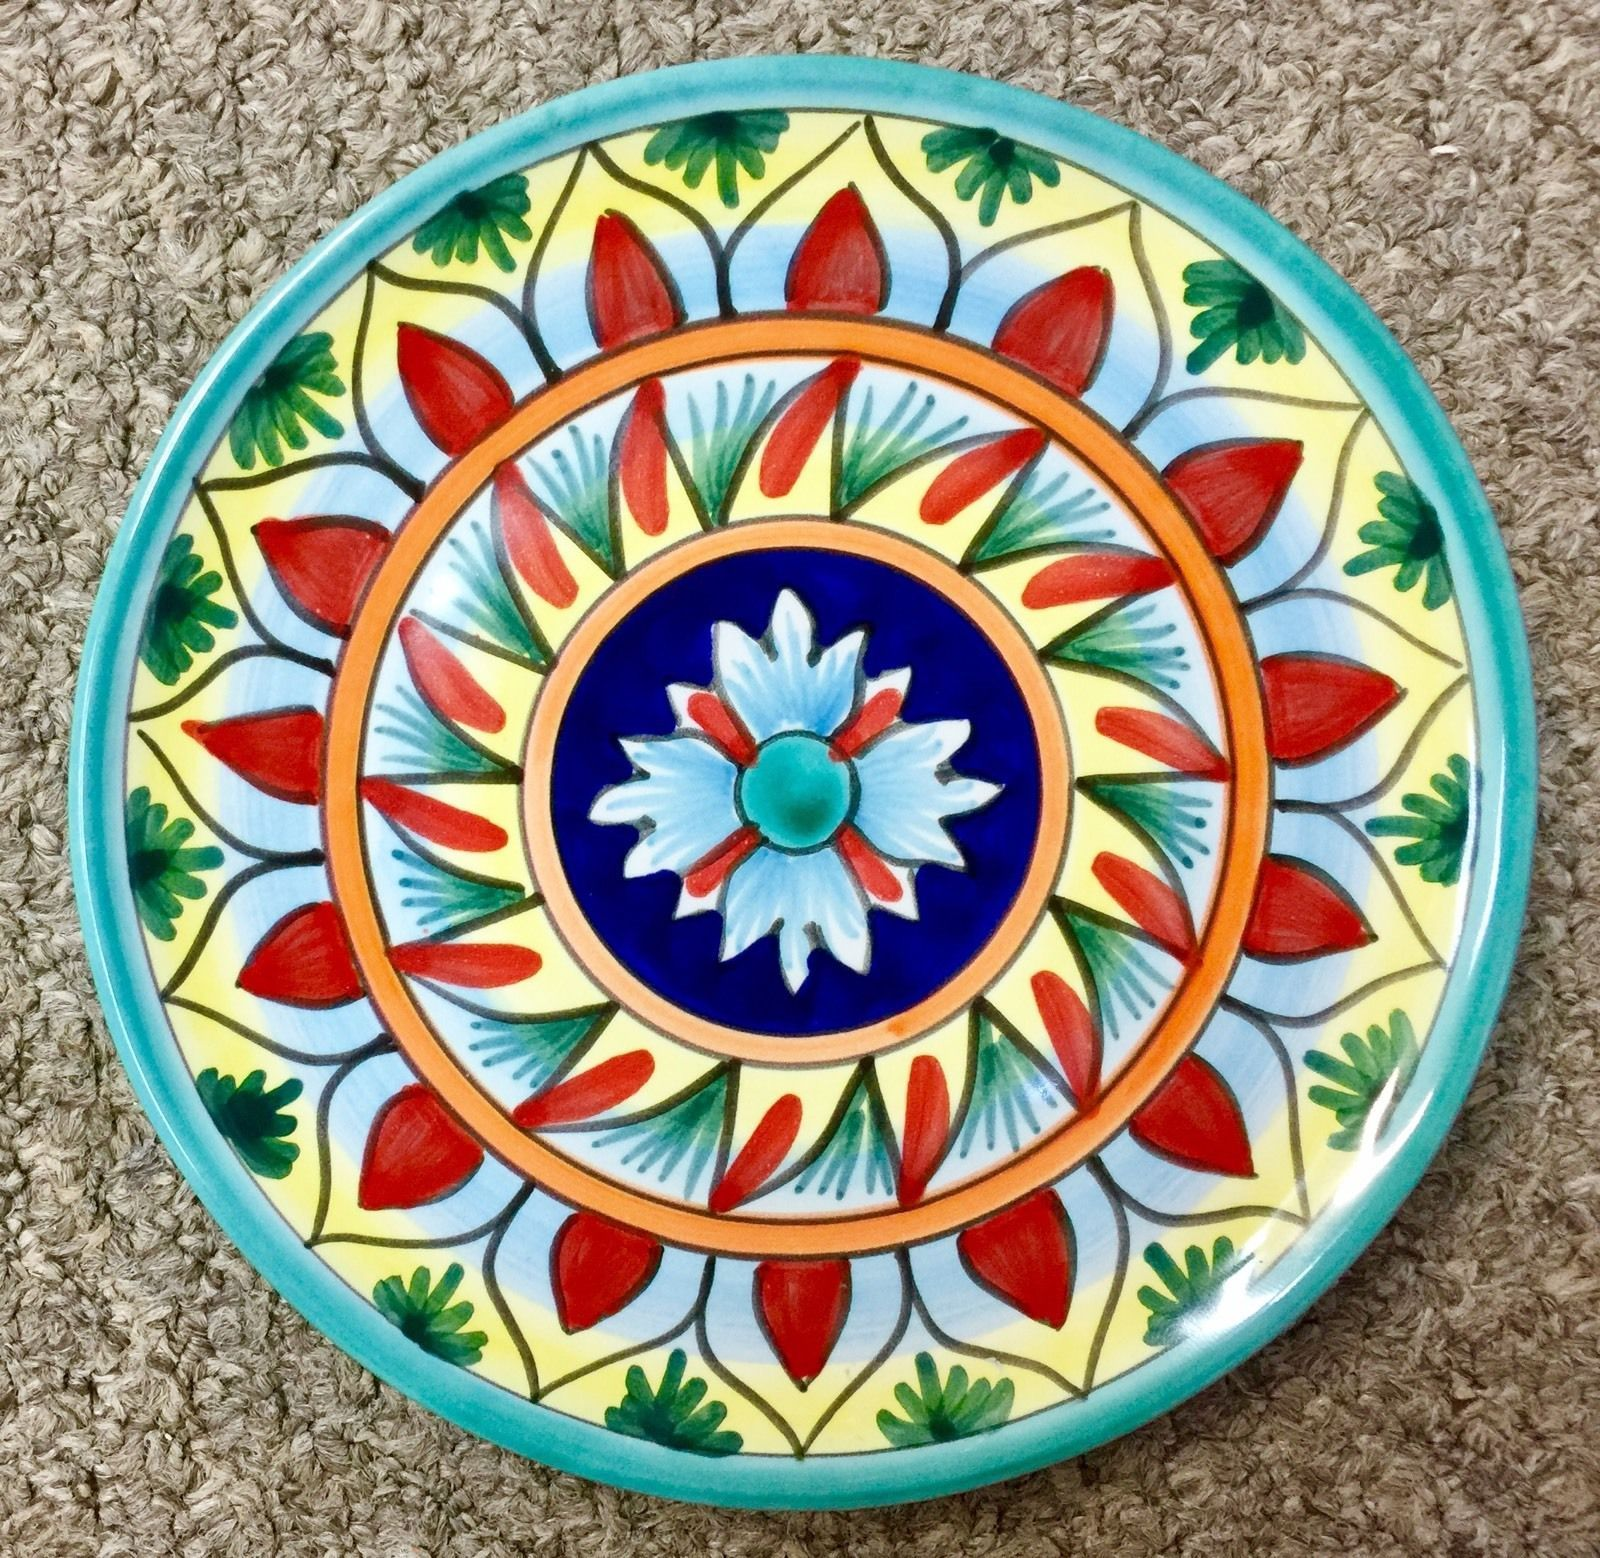 Vietri pottery sale - Vietri Pottery 10 In Plate Chicken Campagna Style Painted By Hand In Italy New